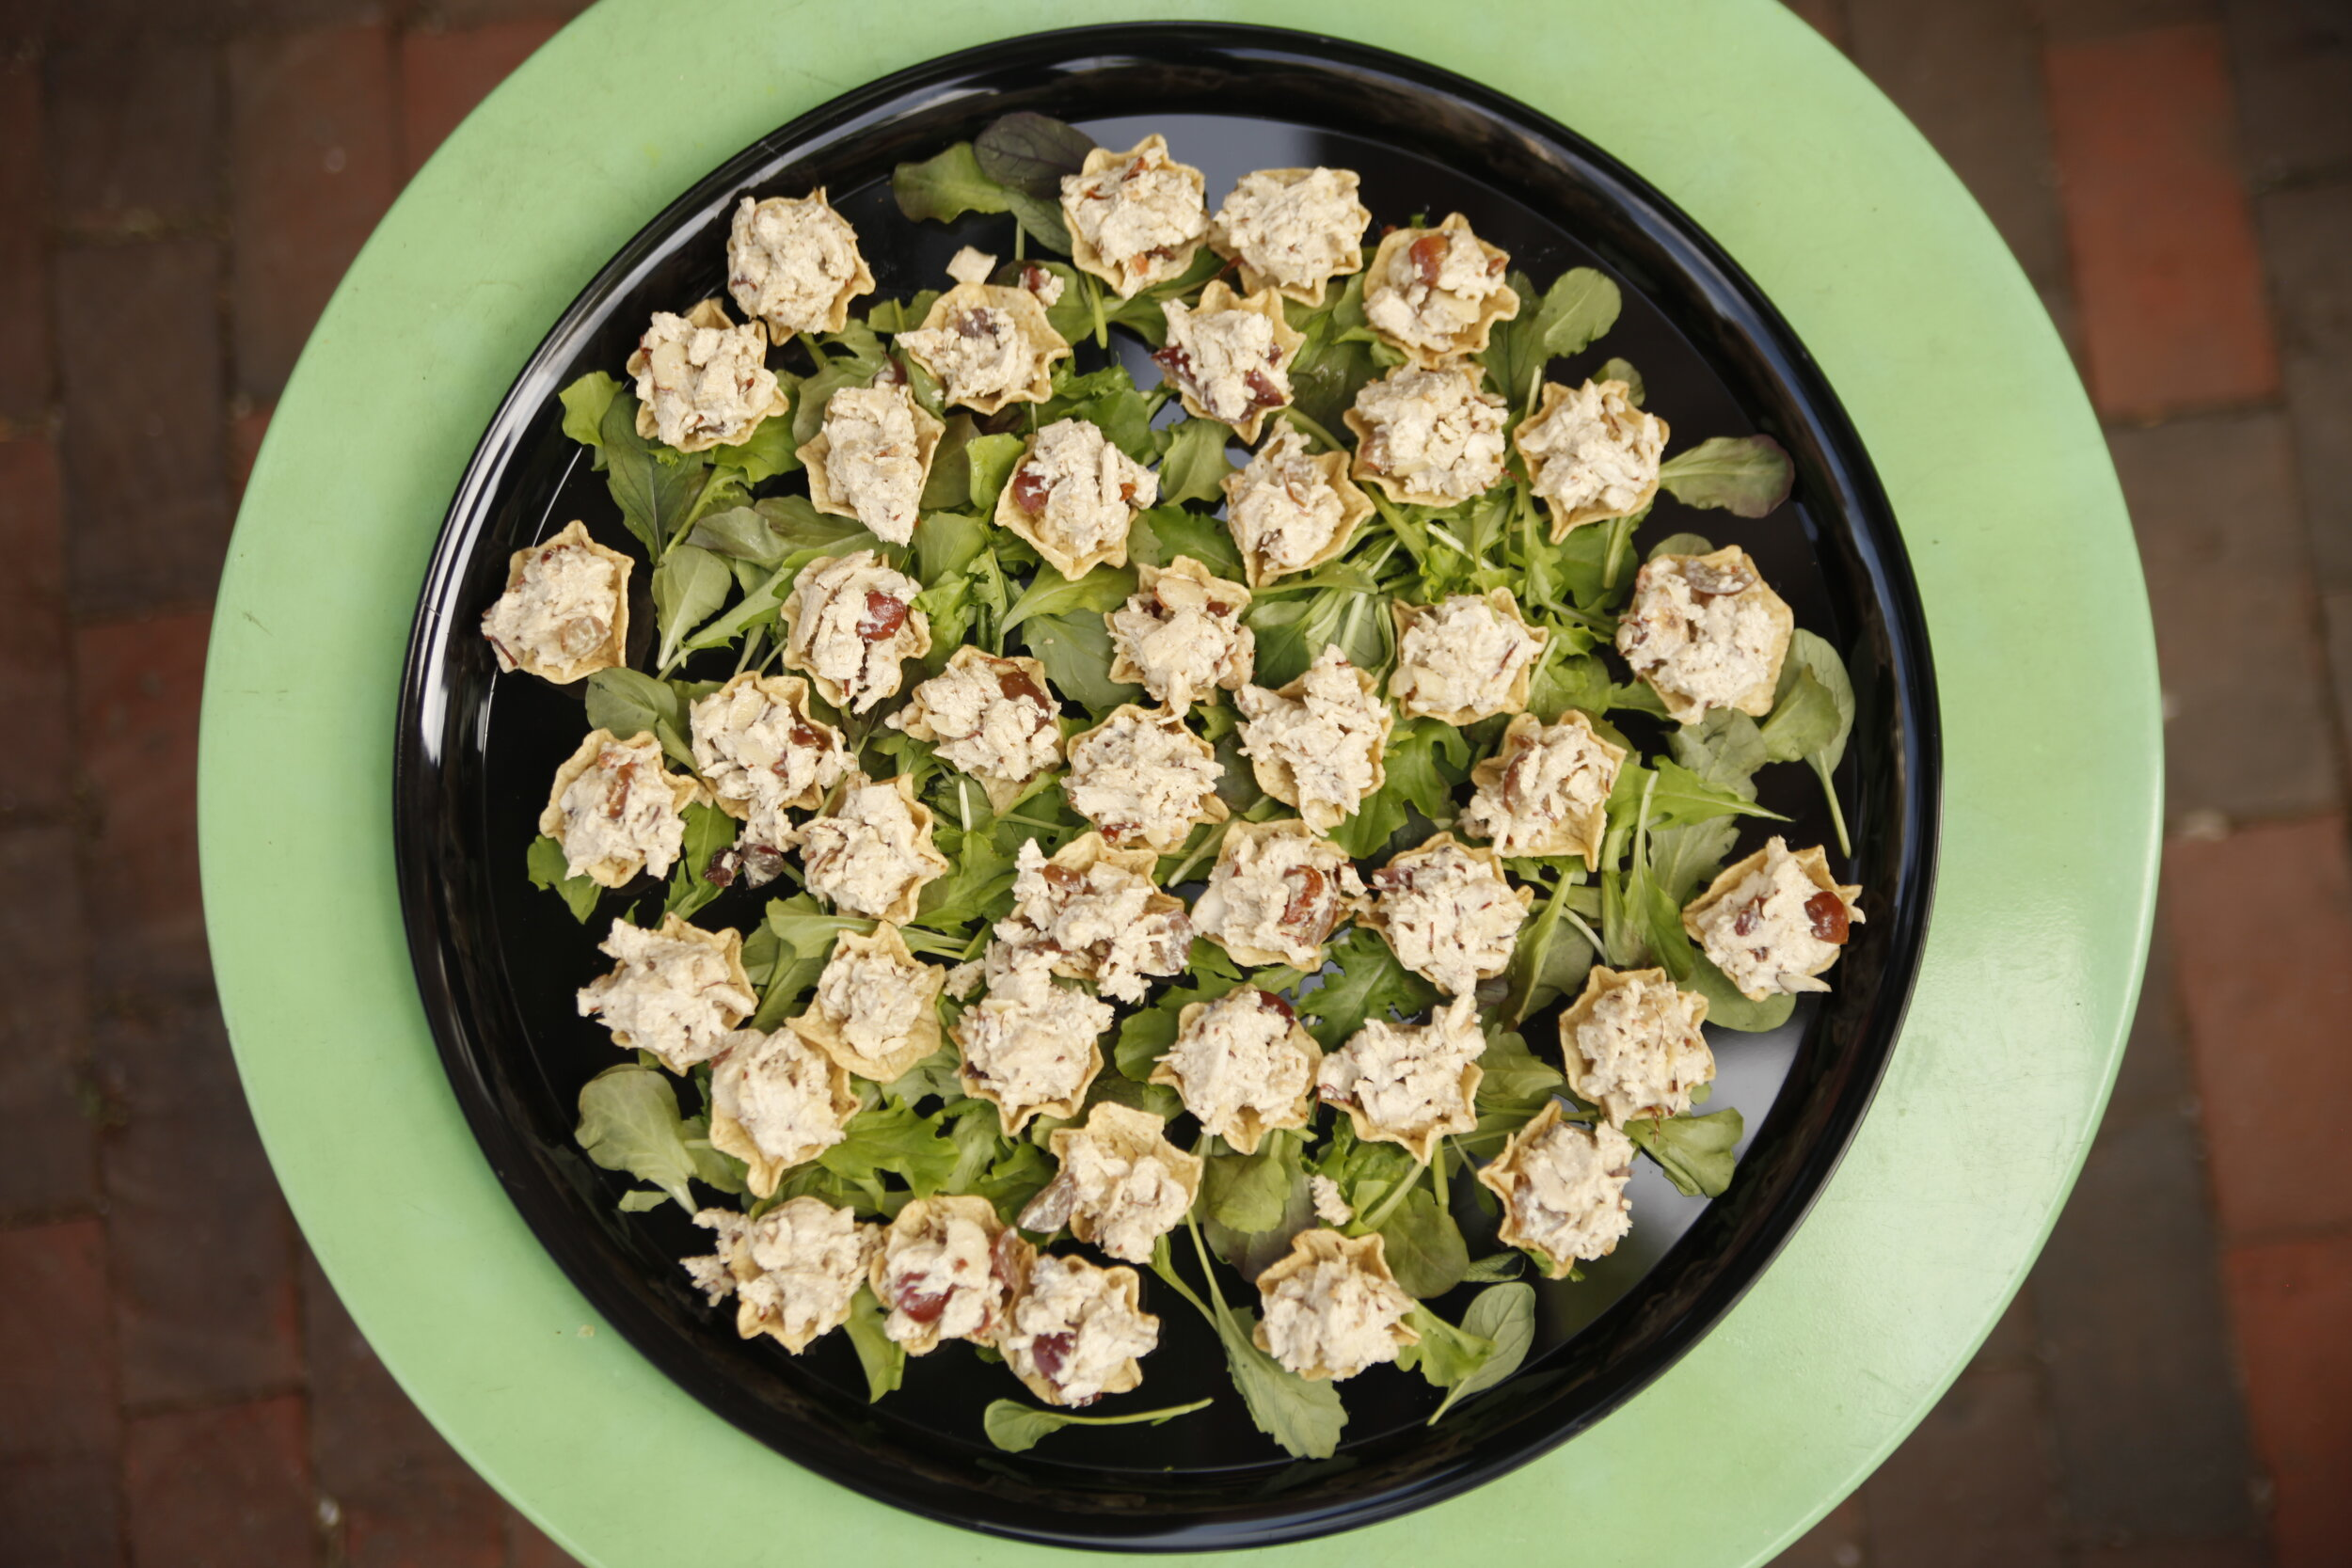 Chicken Salad Chips - OUR FAMOUS CHICKEN SALAD WITH GRAPES, ALMONDS & BACON IN CRUNCHY TORTILLA CHIPS50 BITES $50